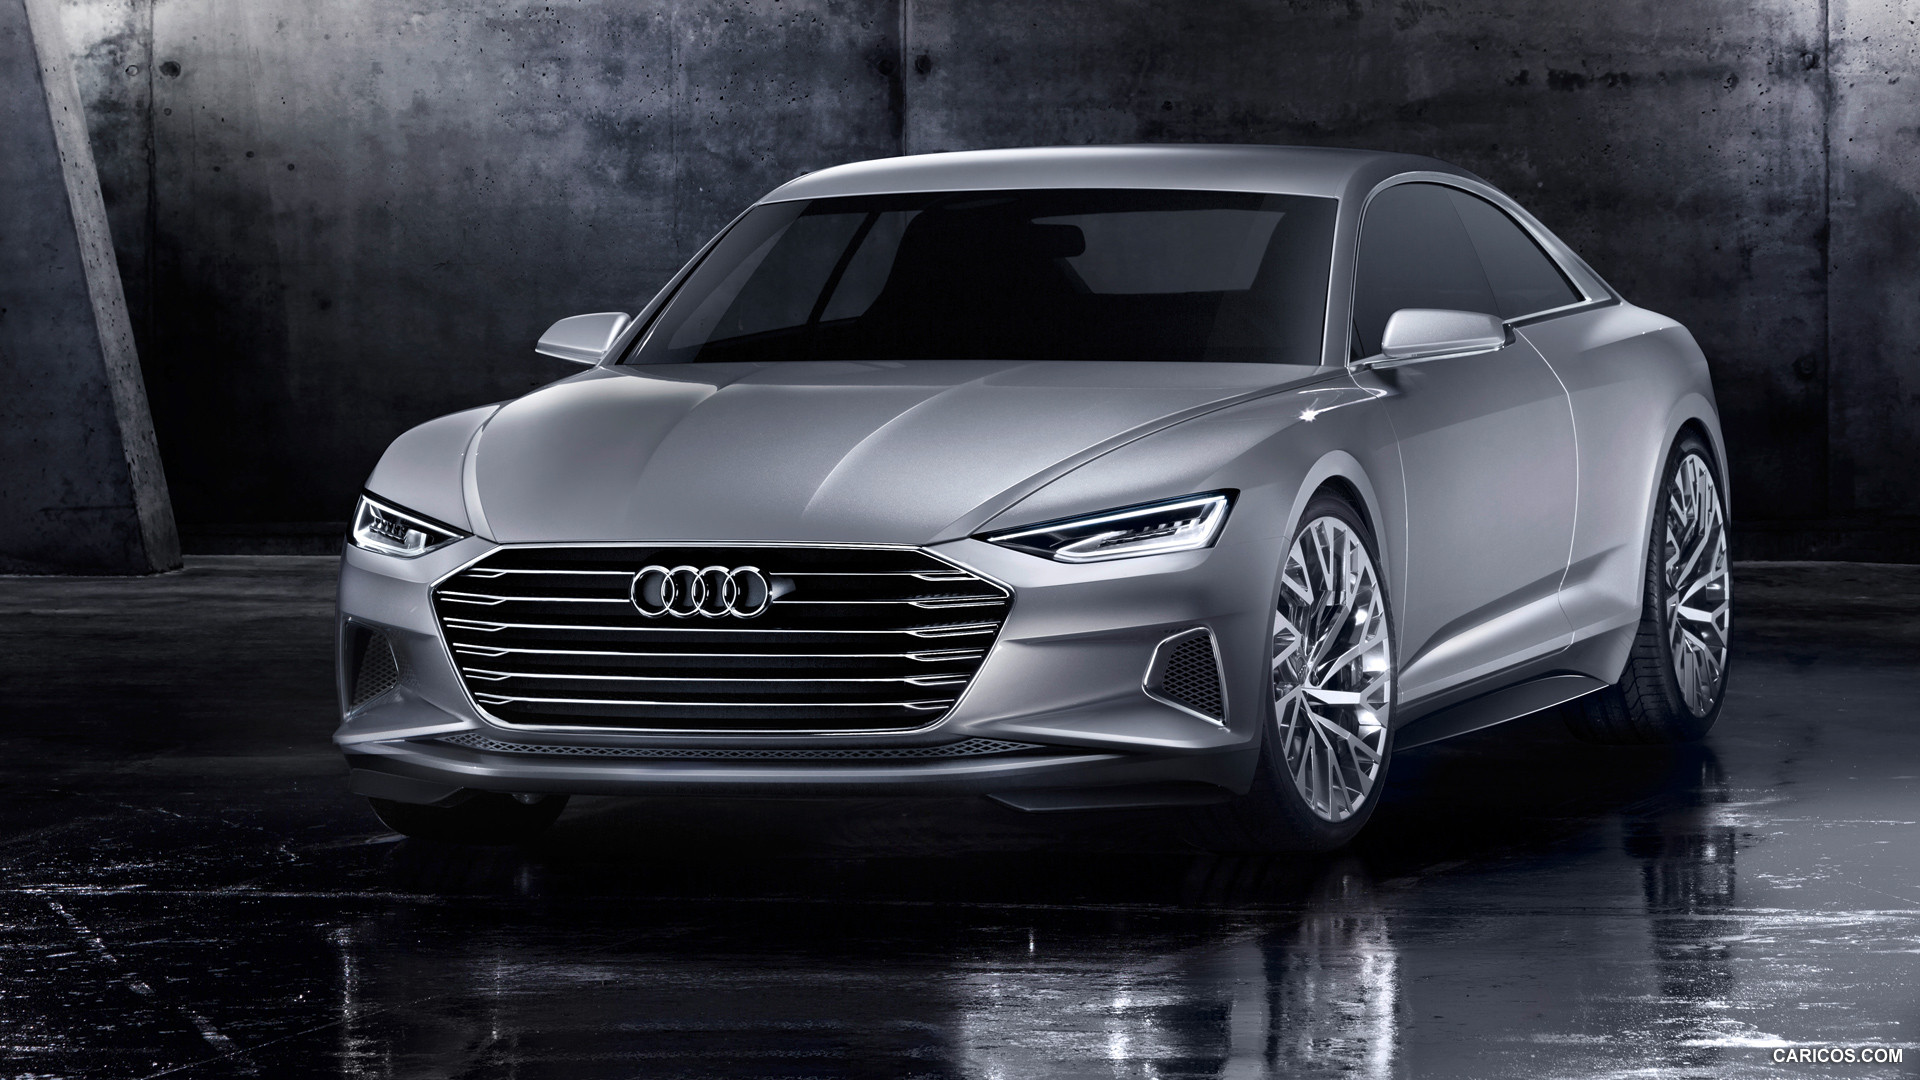 Audi Prologue photo 133295